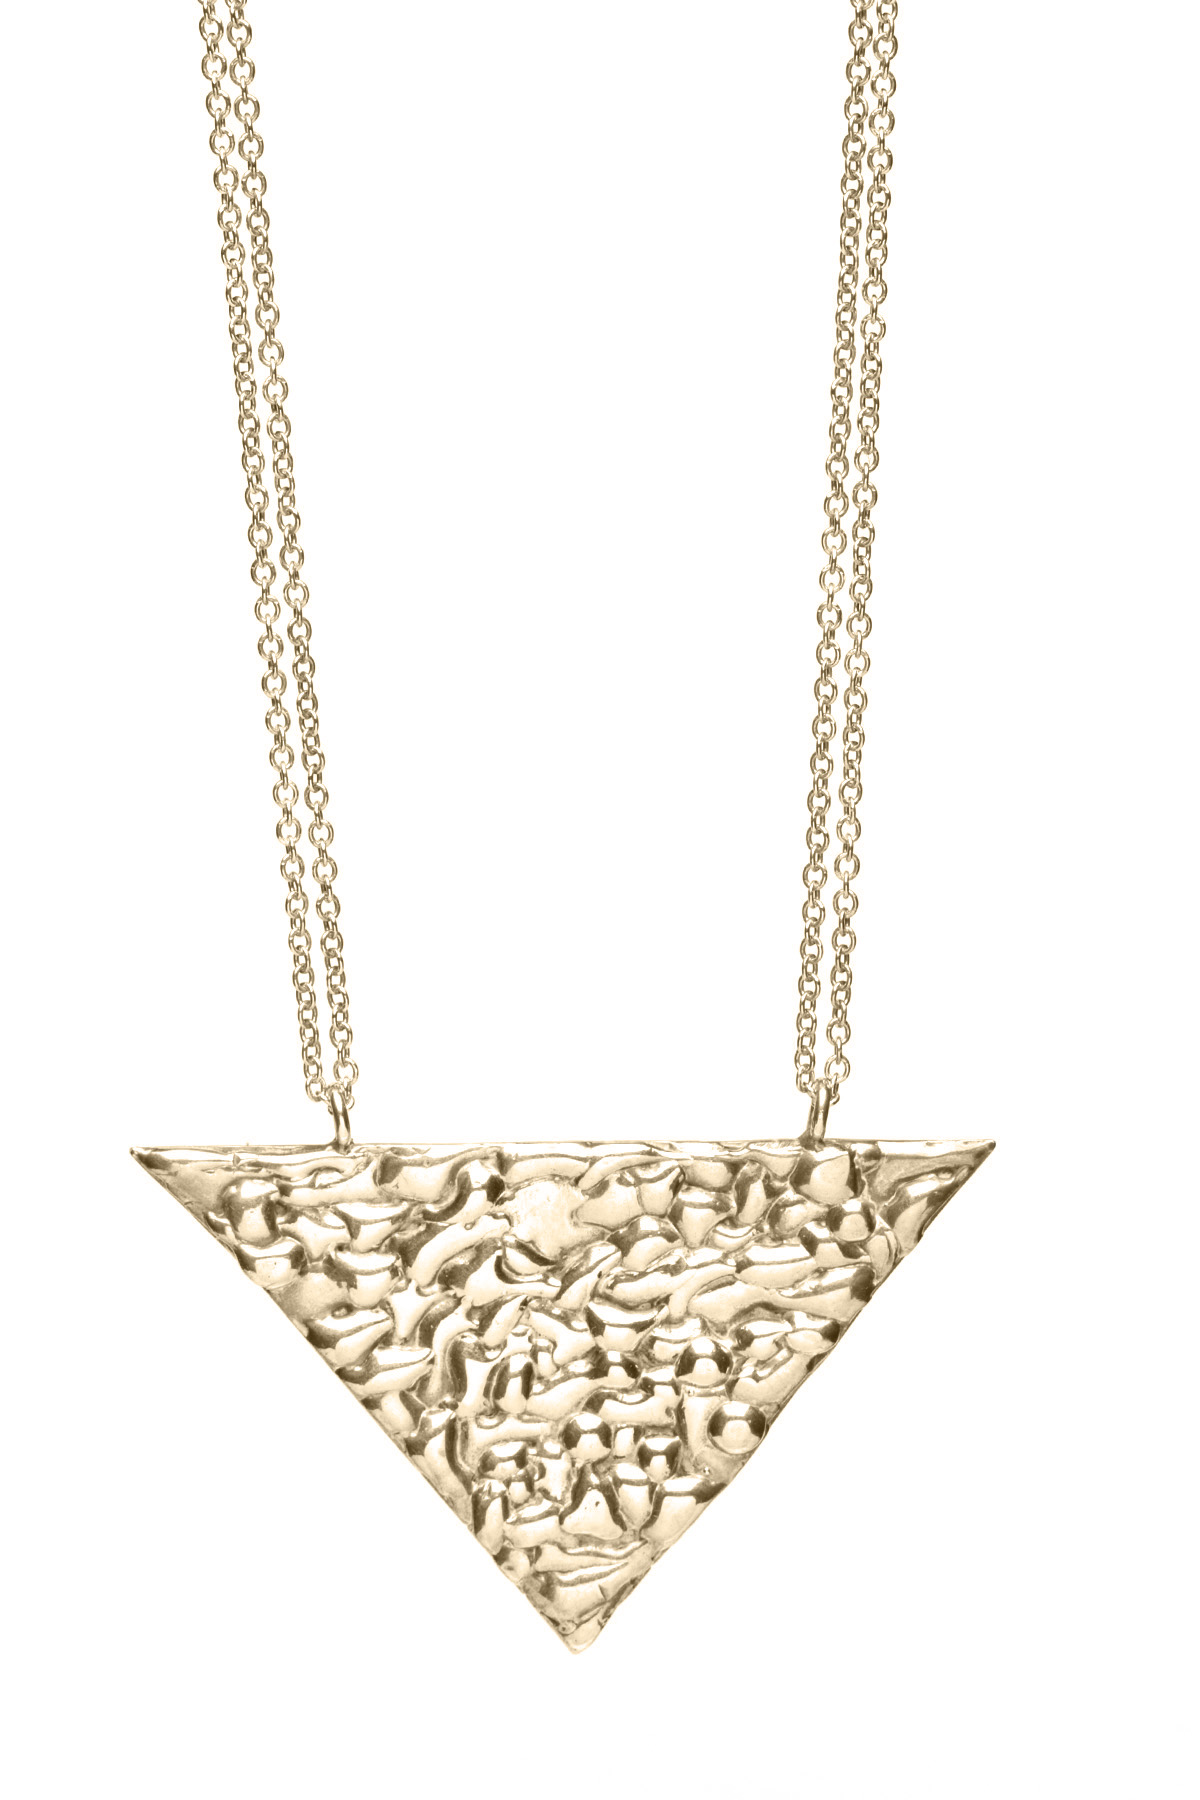 14kynatures.way.traingle.necklace.jpg